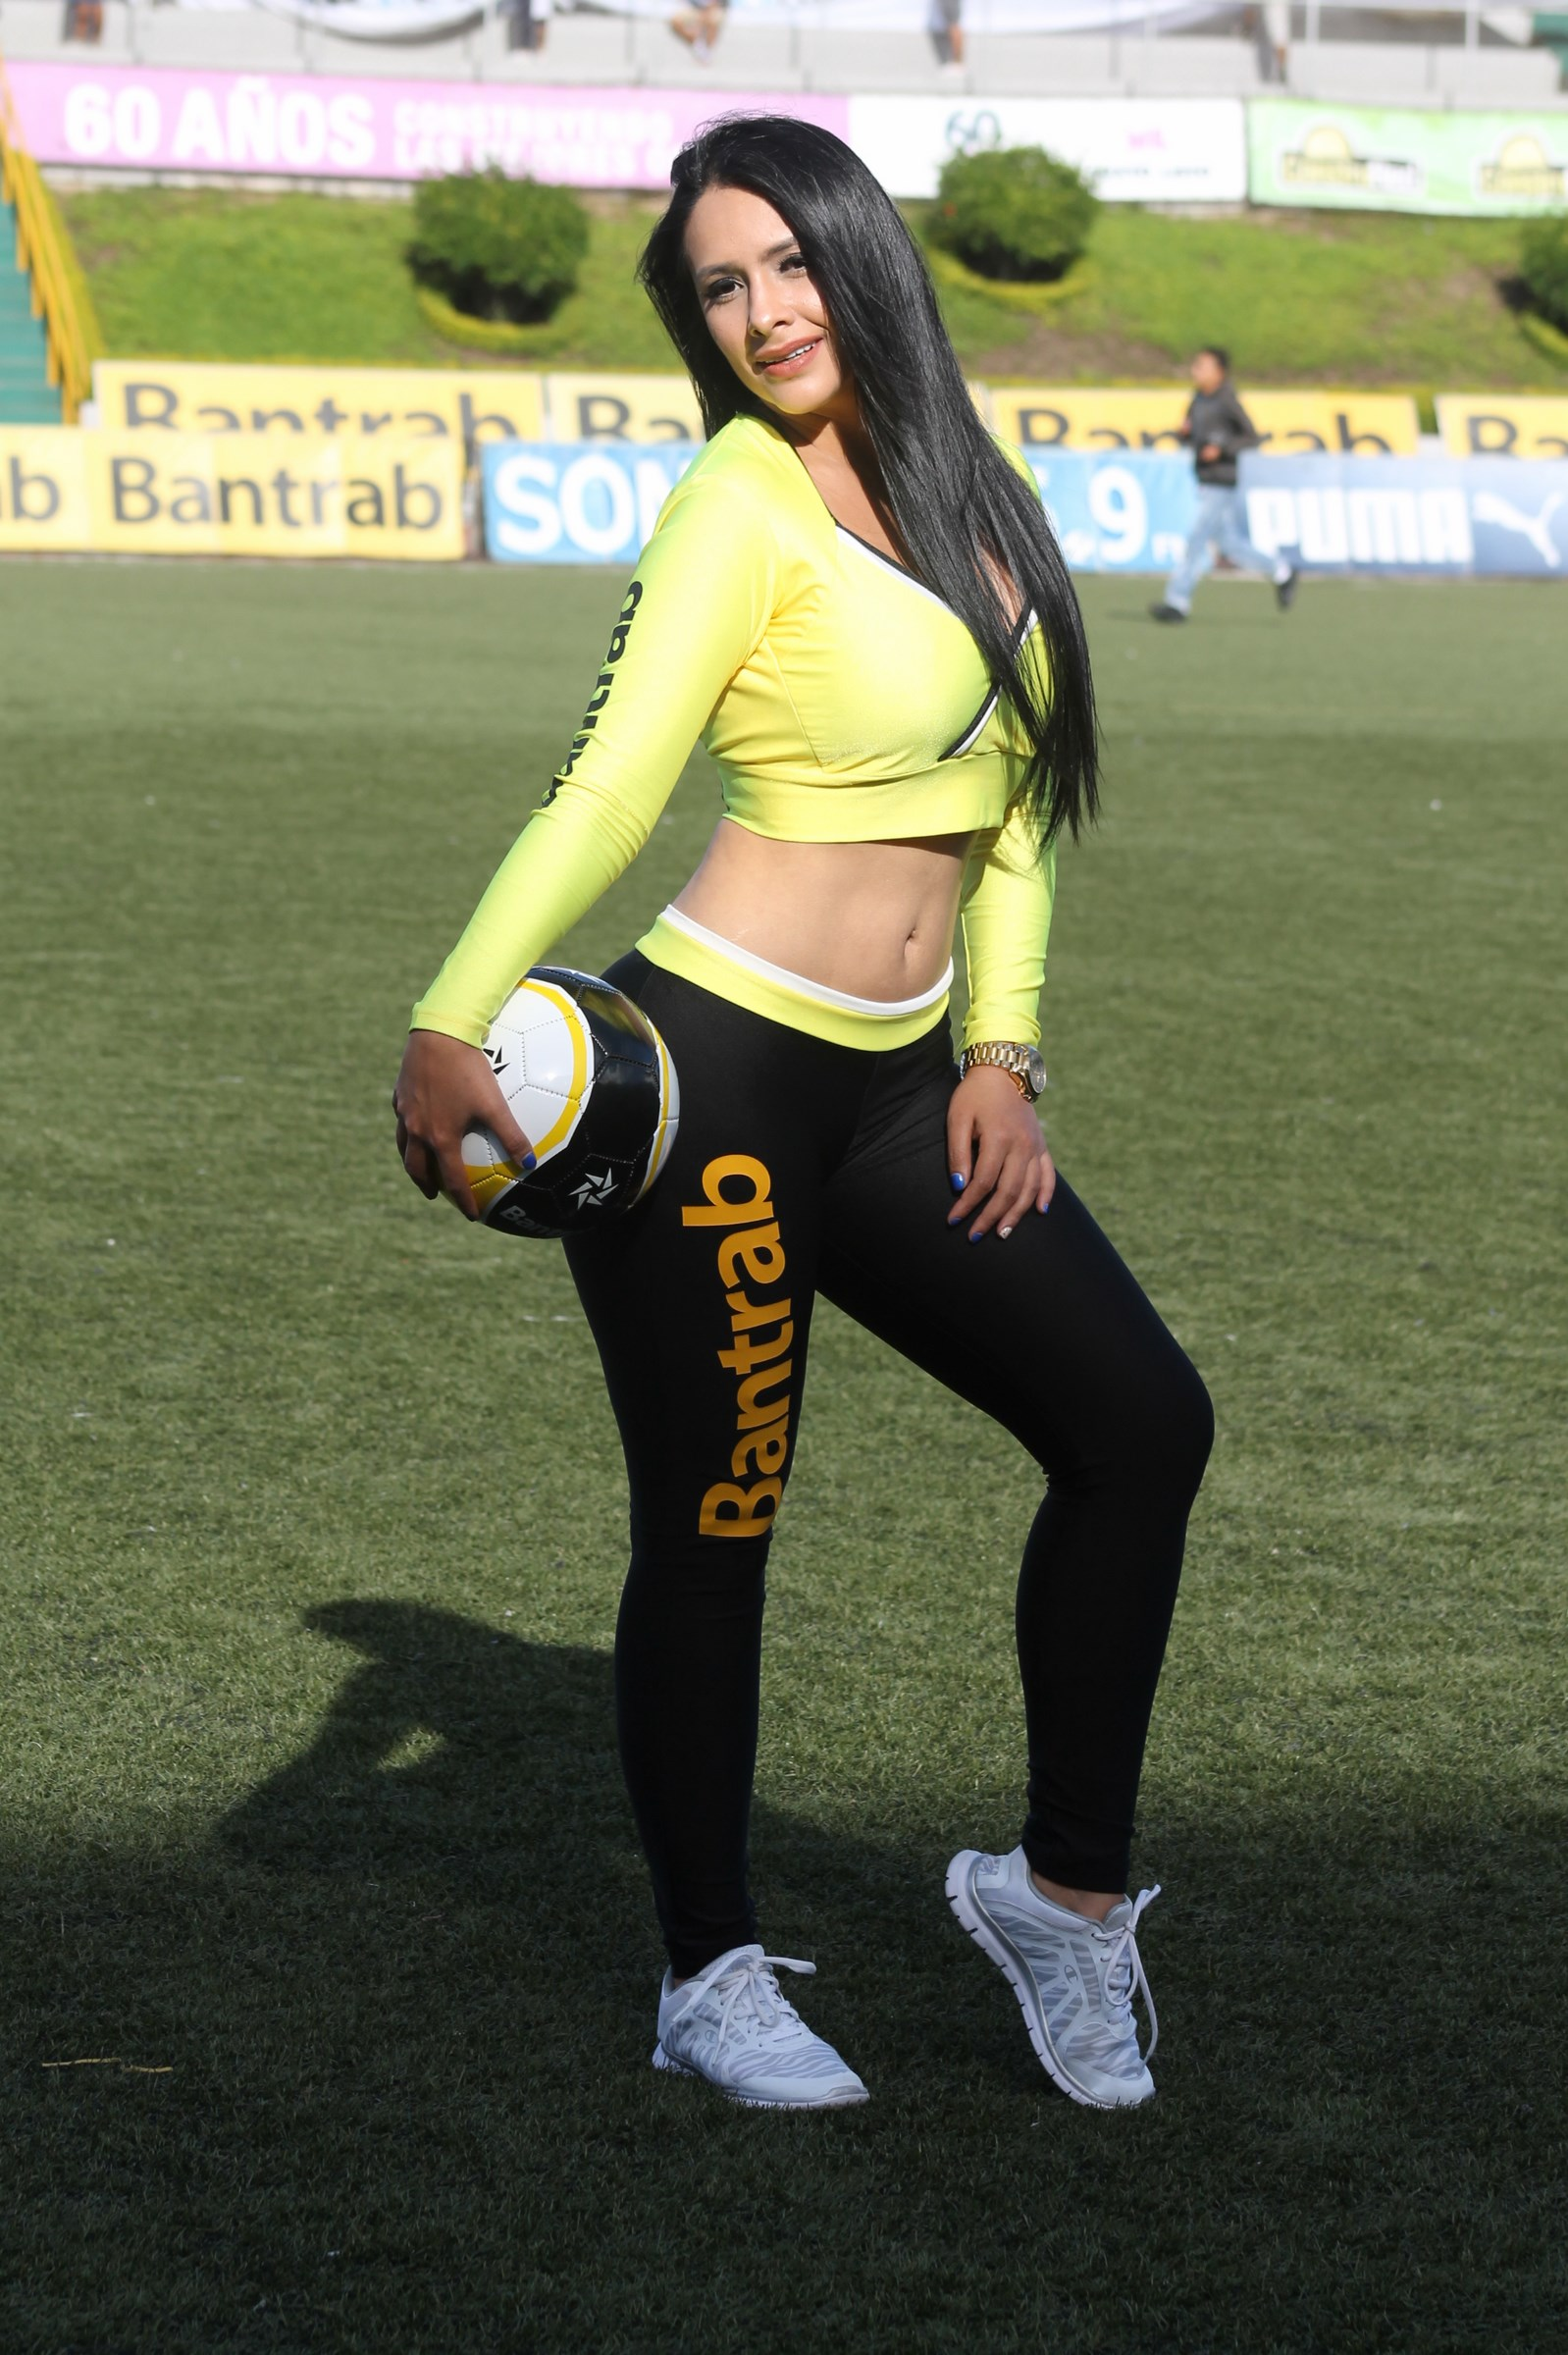 stefany-robles-1